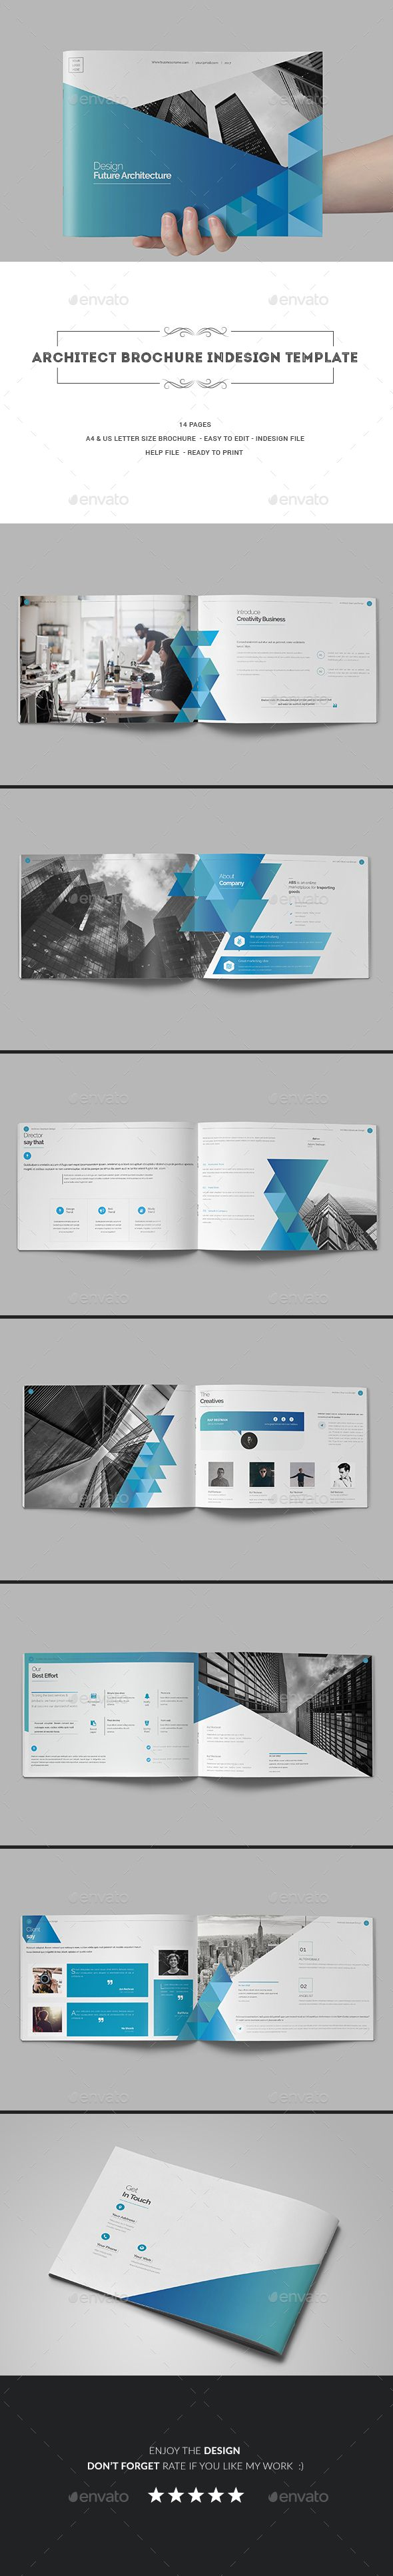 Architect Brochure Indesign Template   Brochures, Indesign templates ...